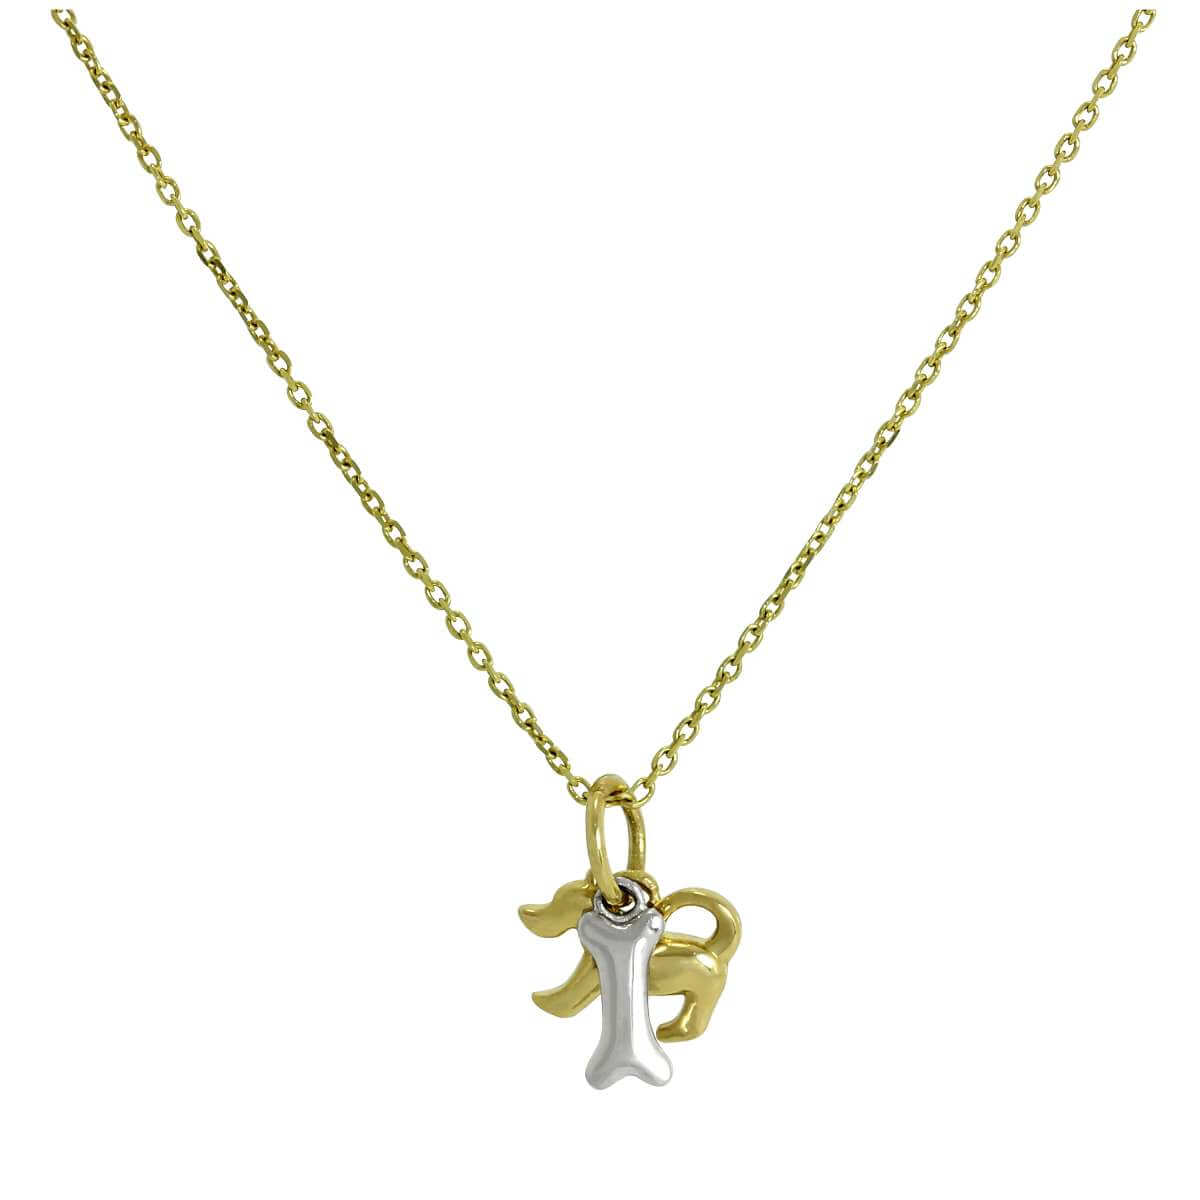 9ct Yellow Gold Dog Pendant w 9ct White Gold Bone on Chain 16 - 20 Inches